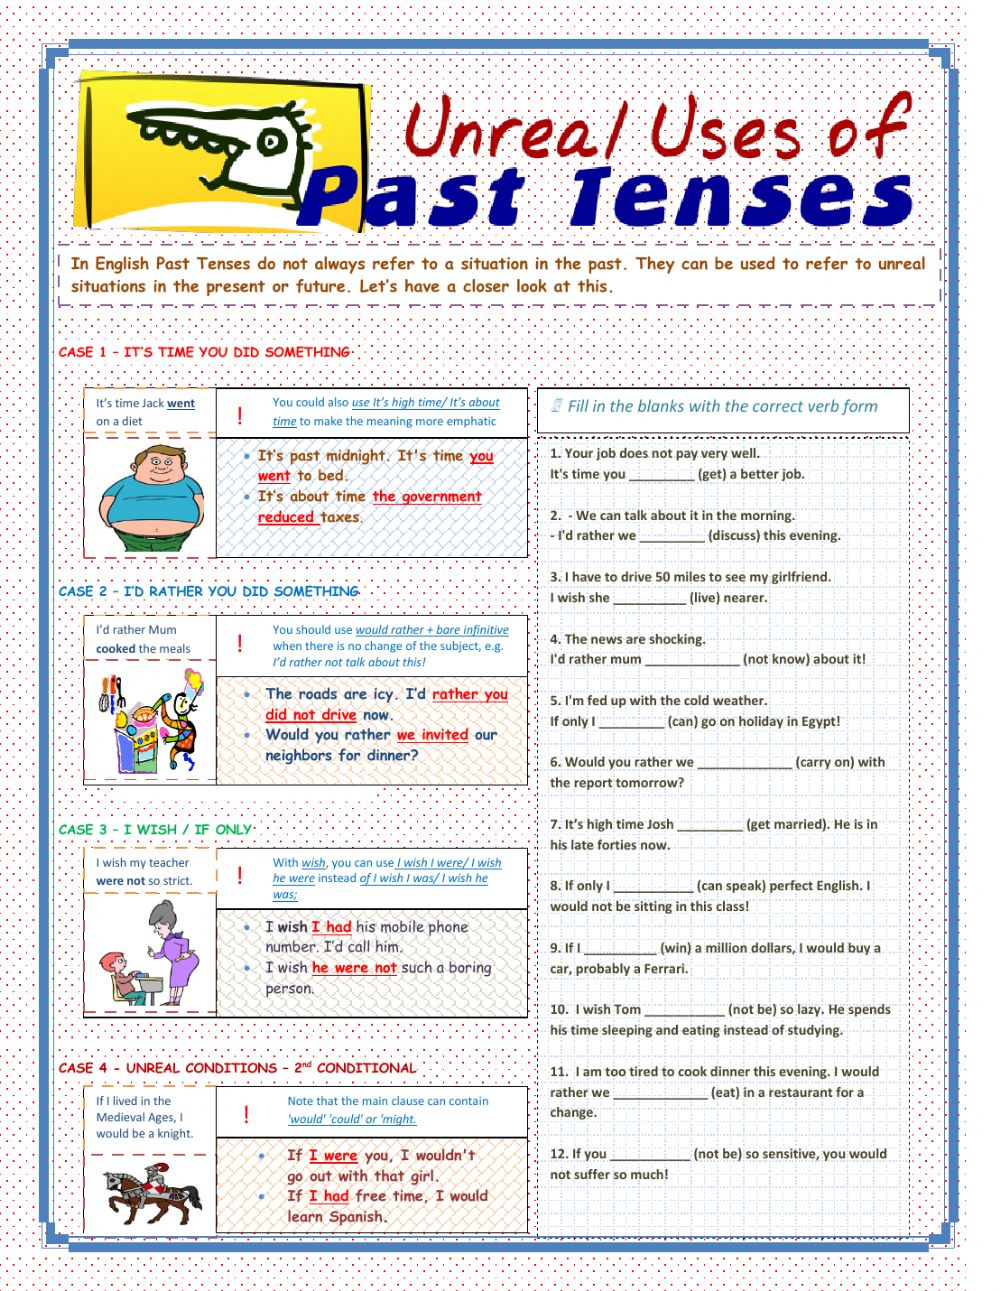 Unreal Uses Of Past Tenses